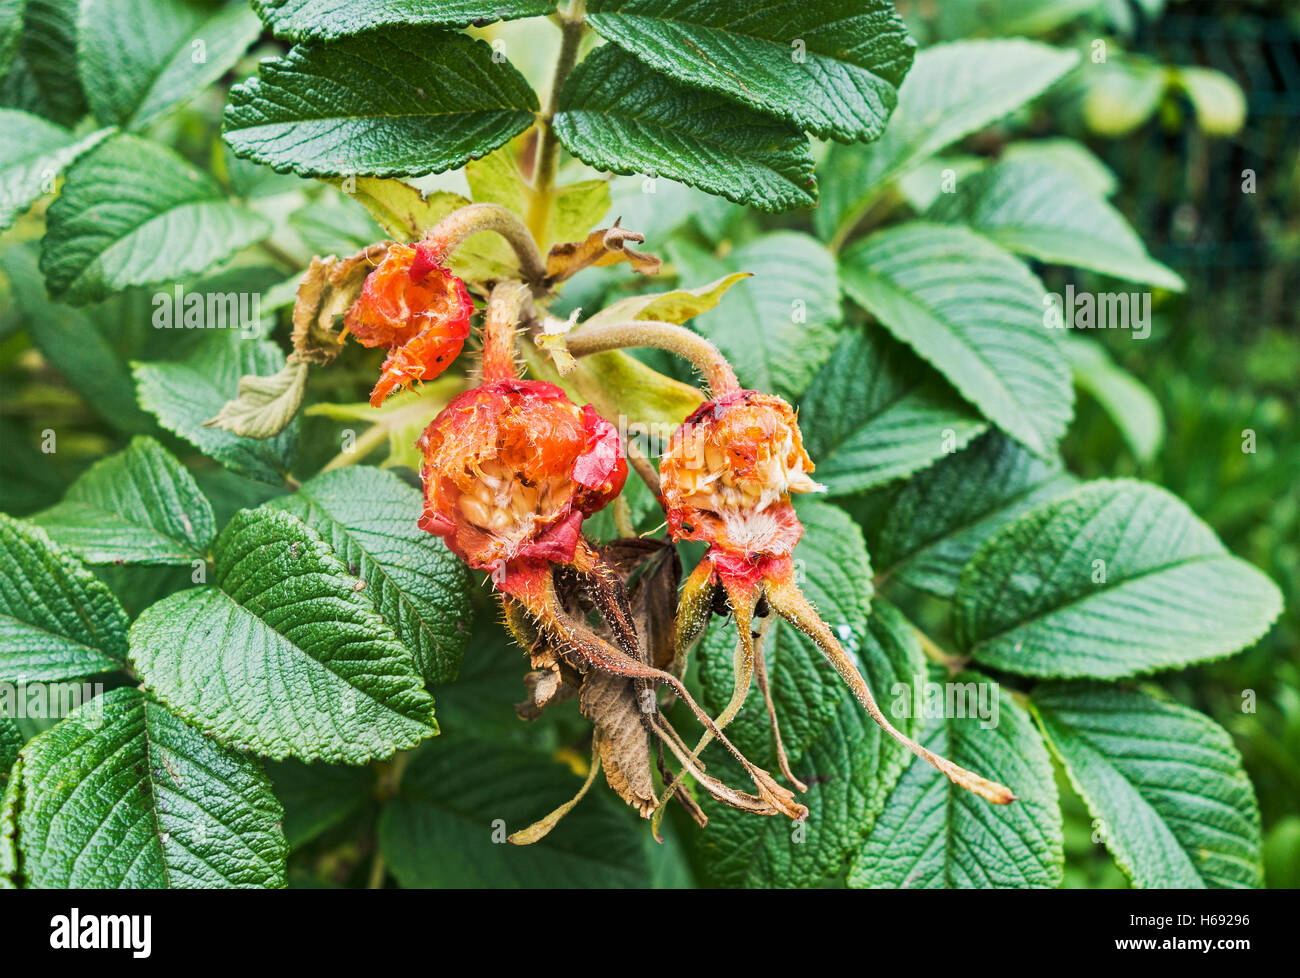 Rose hips are a good source of vitamin C, although the seeds are strictly for the birds. - Stock Image